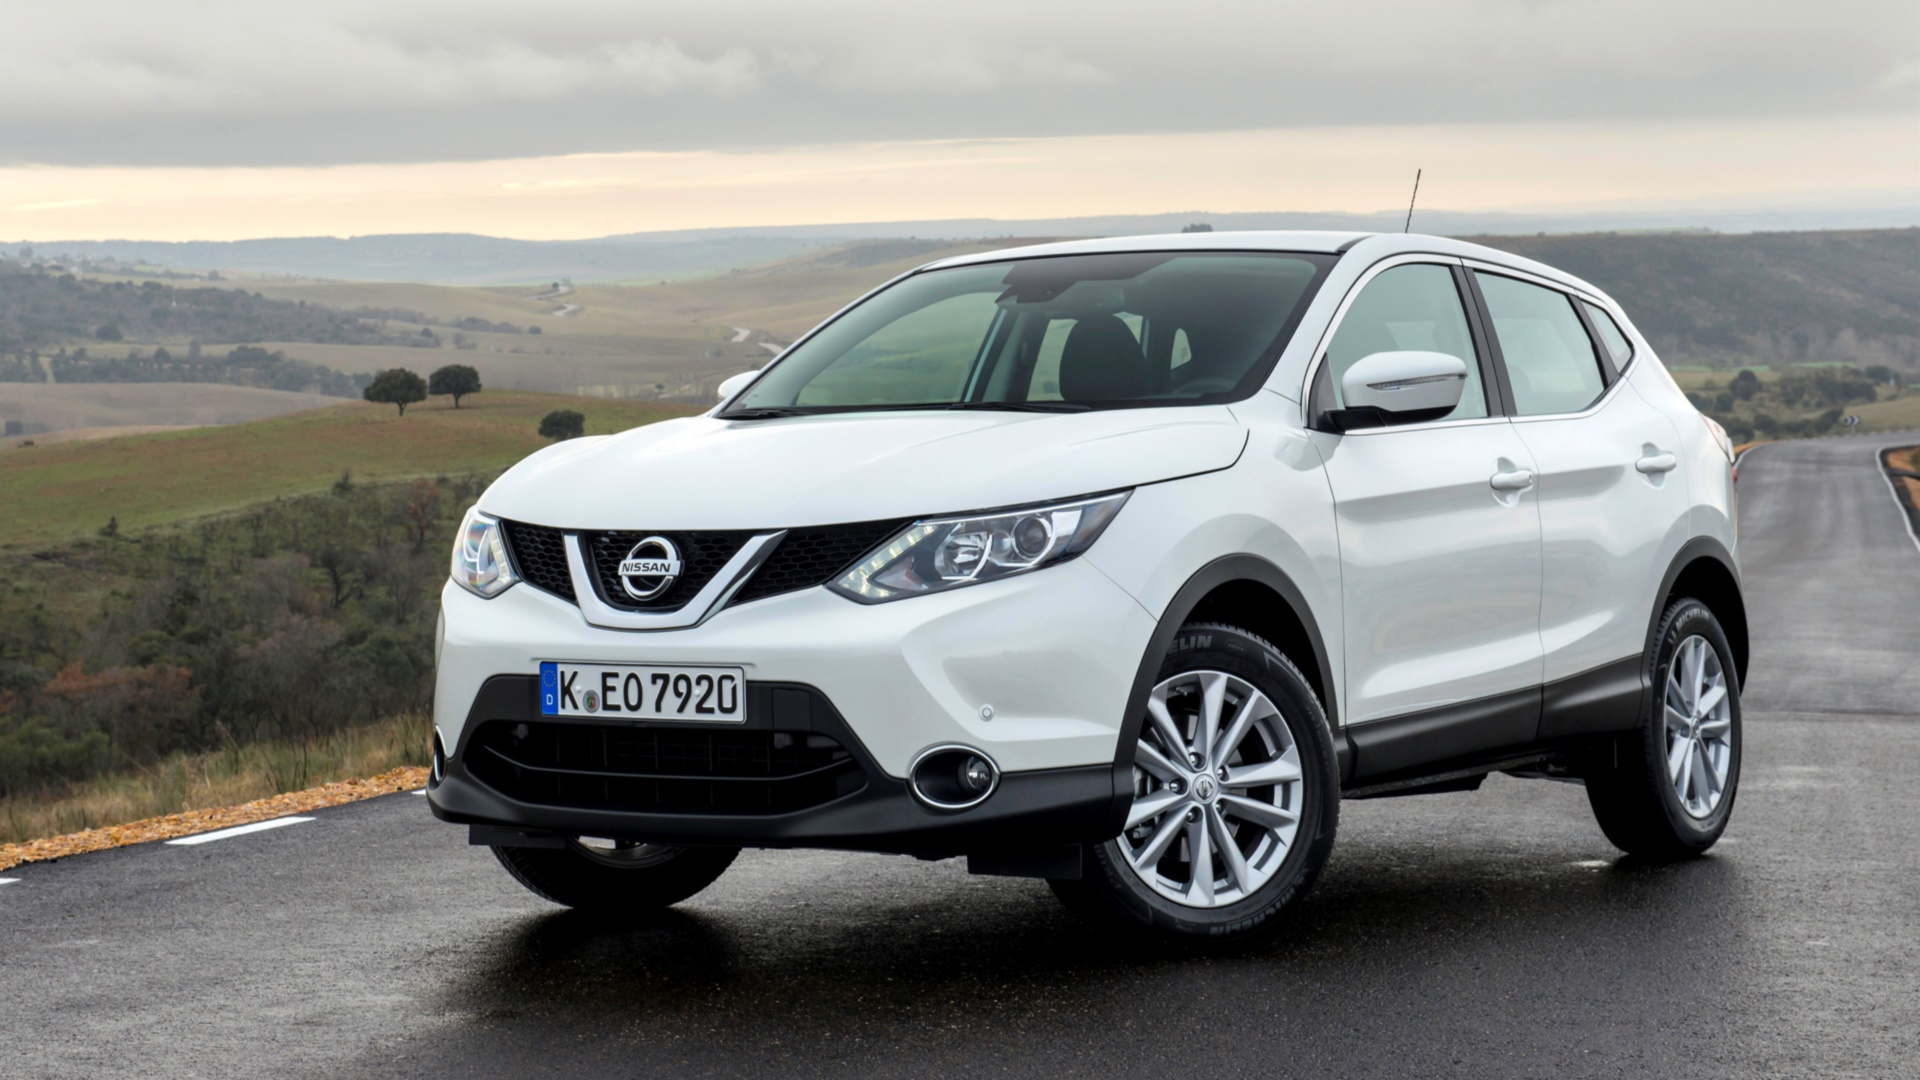 2014 nissan qashqai computer wallpapers desktop backgrounds 1920x1080 id 477669. Black Bedroom Furniture Sets. Home Design Ideas